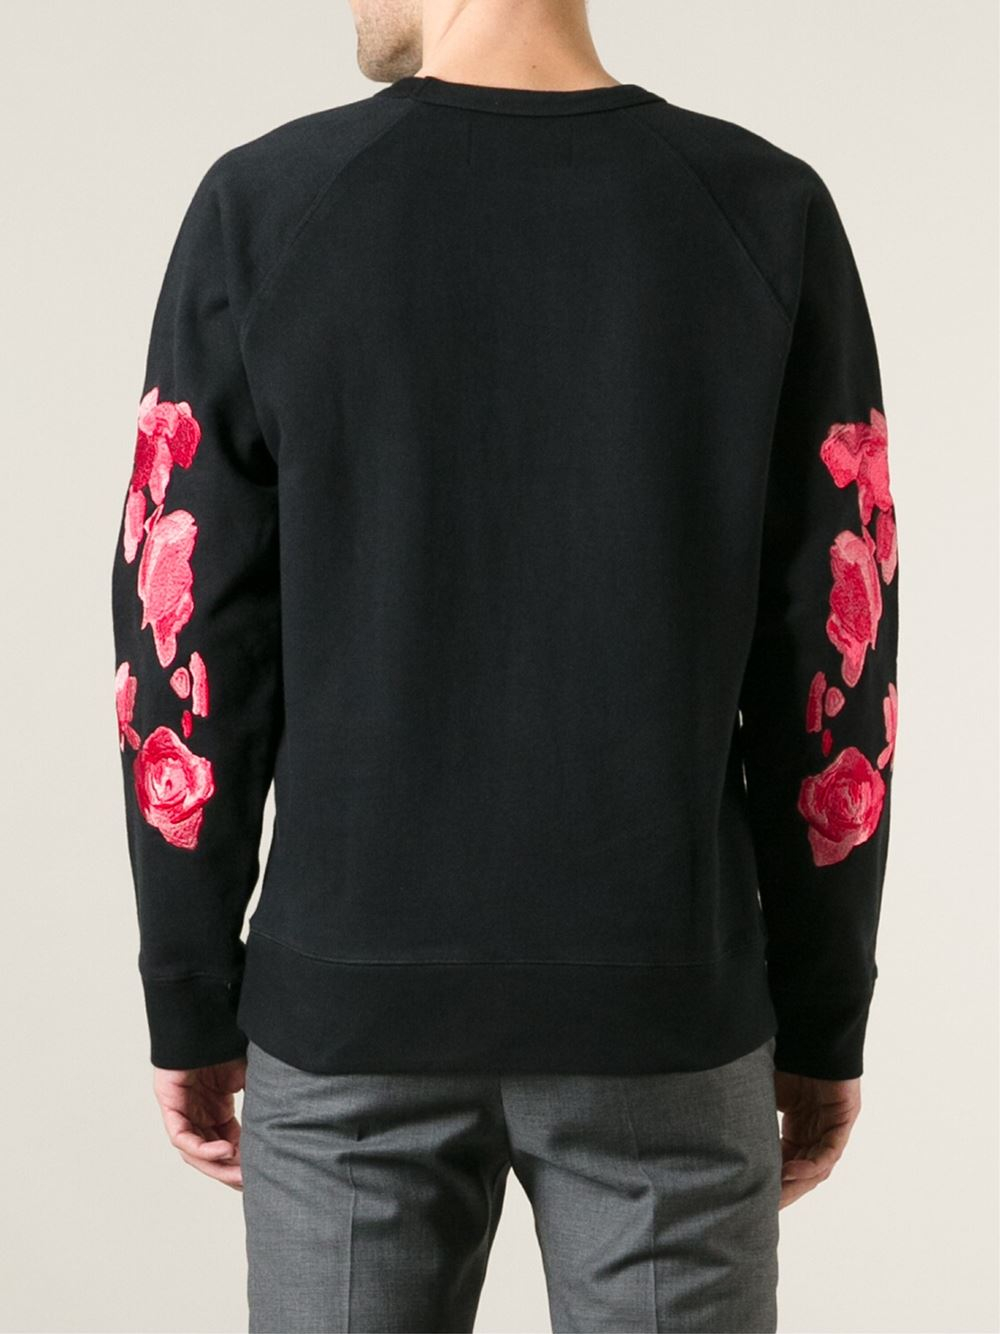 Great Sweater Cute Guy Too: Our Legacy 50s Great Sweater Roses Sweatshirt In